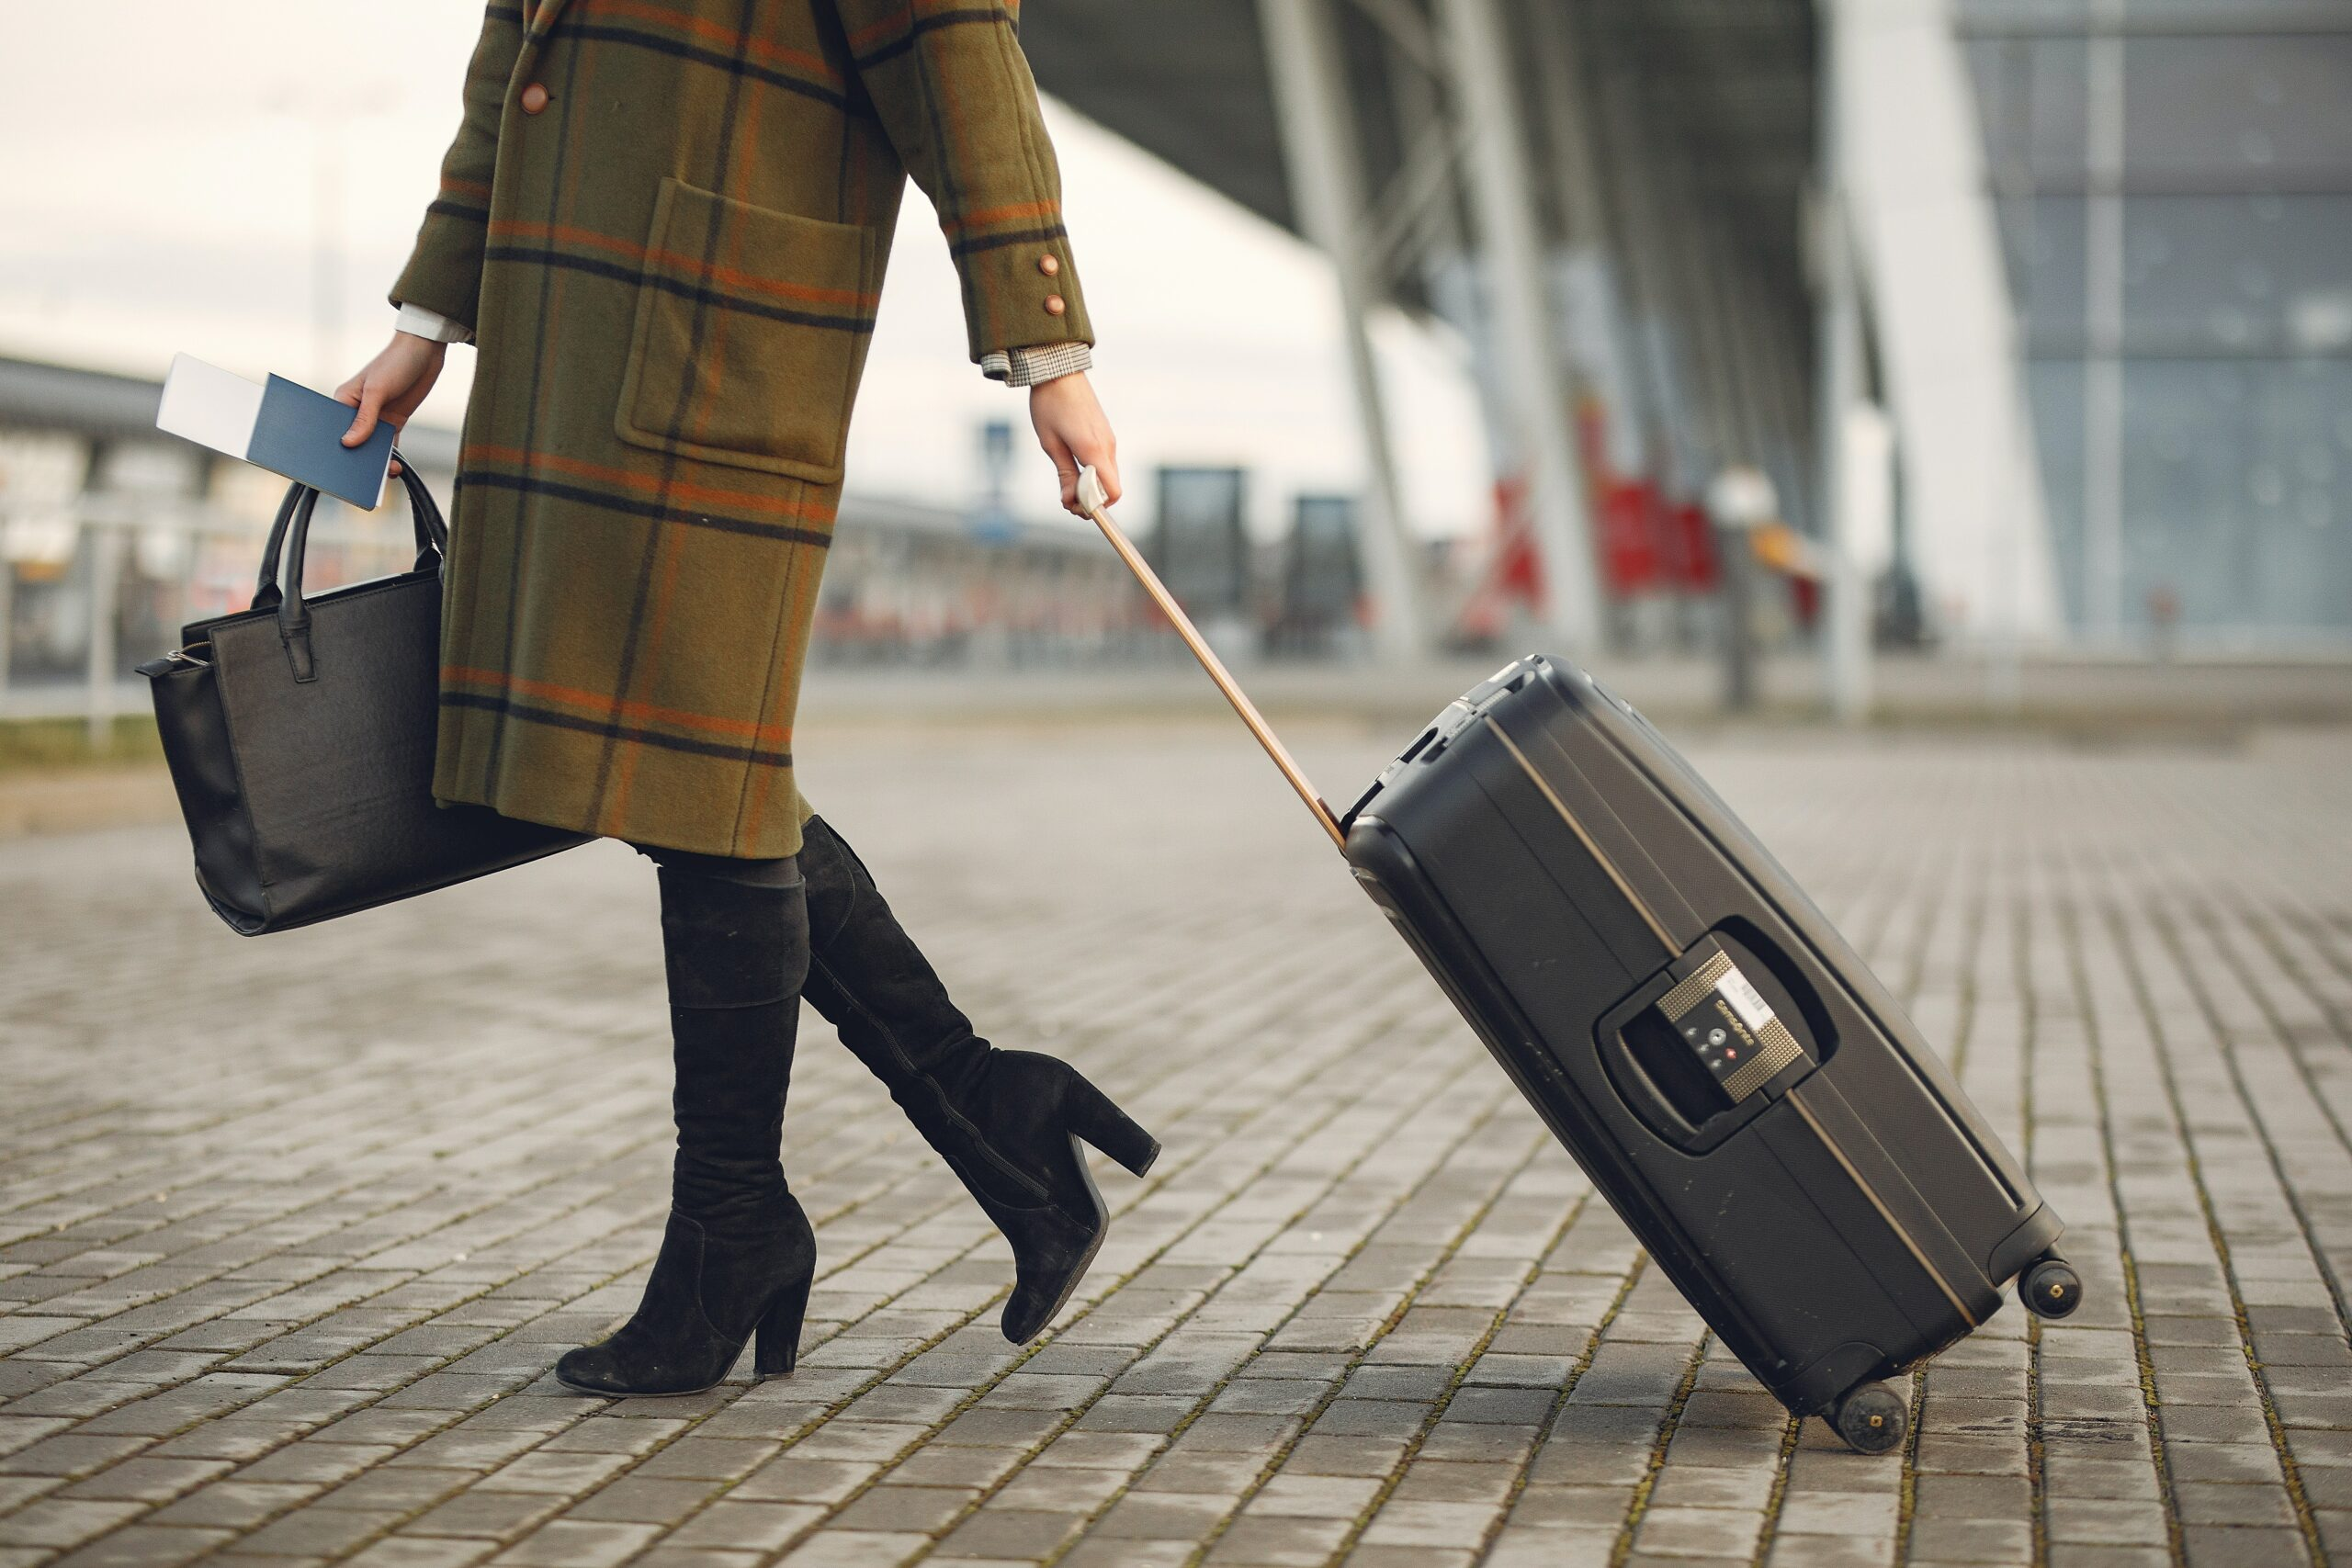 A woman with a handbag and a rolling carry on